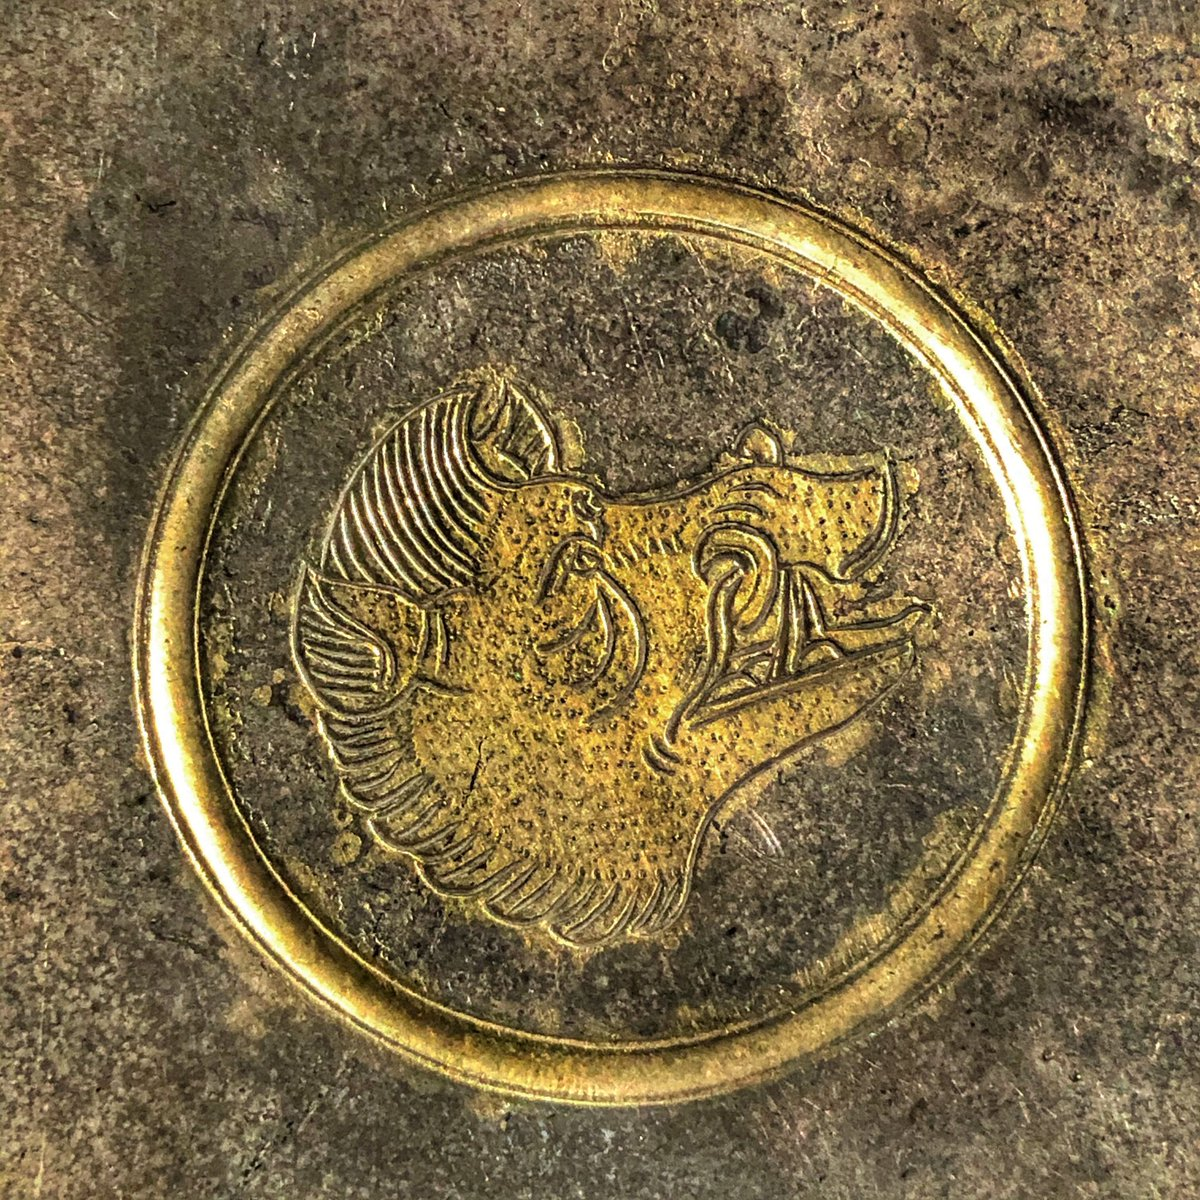 Plate with boar's head (detail). Iran, 6th-7th century, silver and gold. RMAH = Royal Museum of Art and History.  #AHMBrussels #Crossroads https://t.co/Pw3J5V6W5s